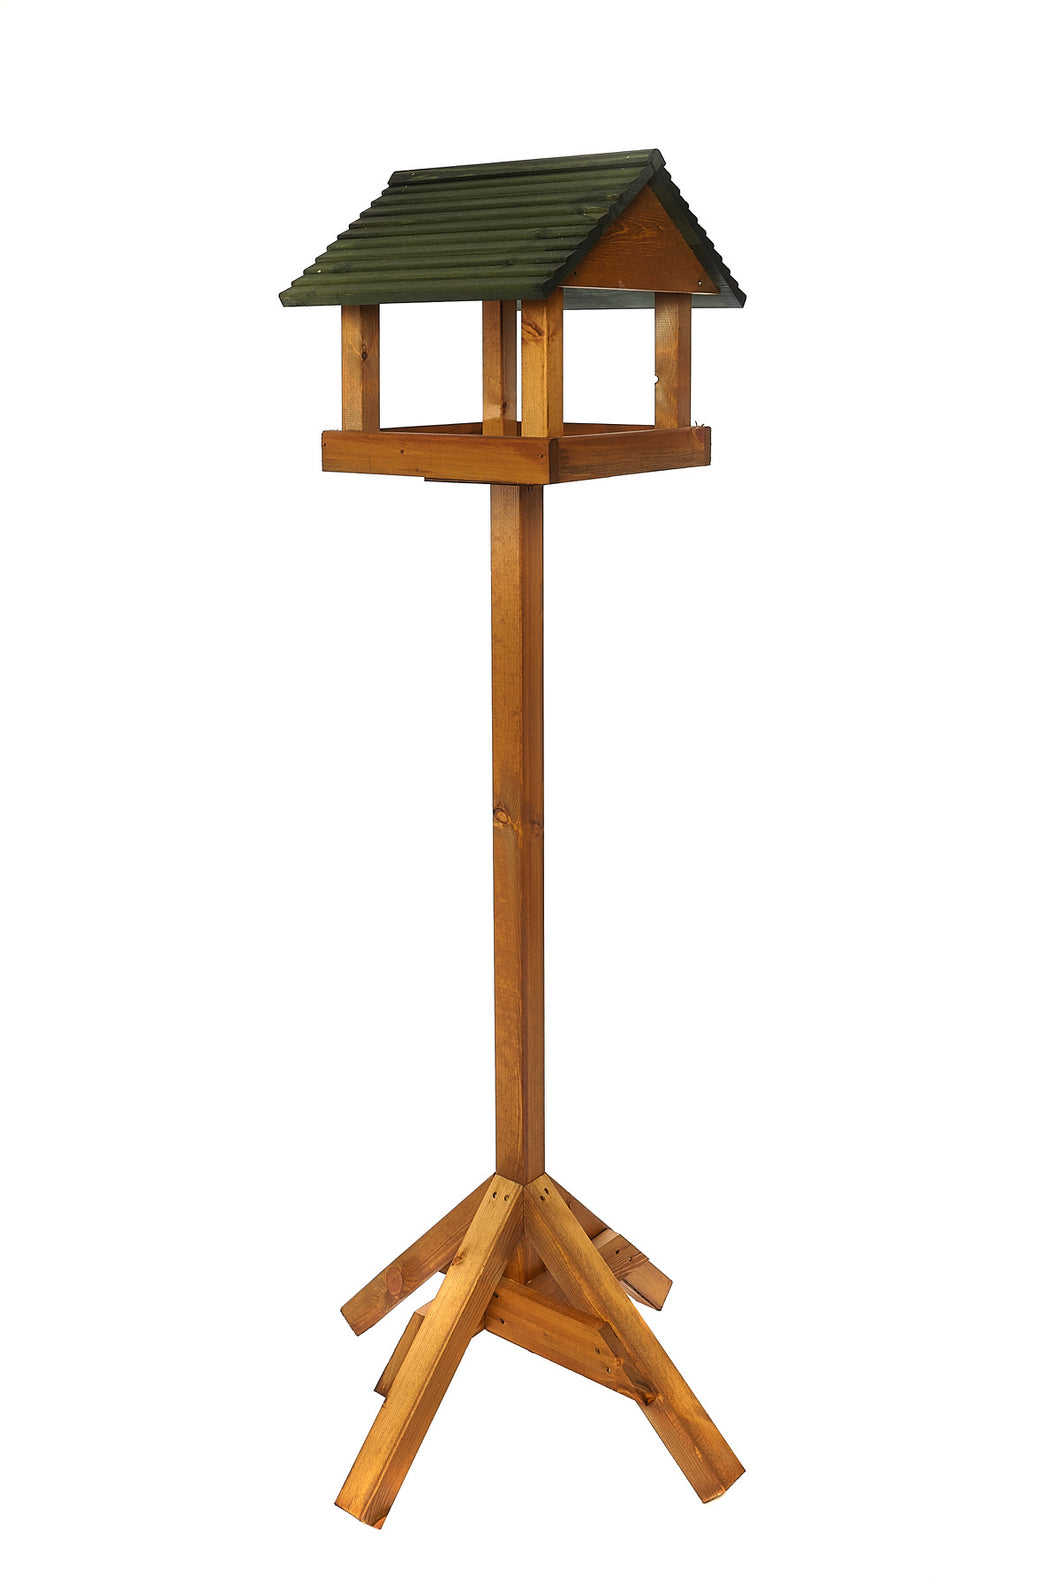 Bird Cuisine - Forest Green Wooden Roof Bird table